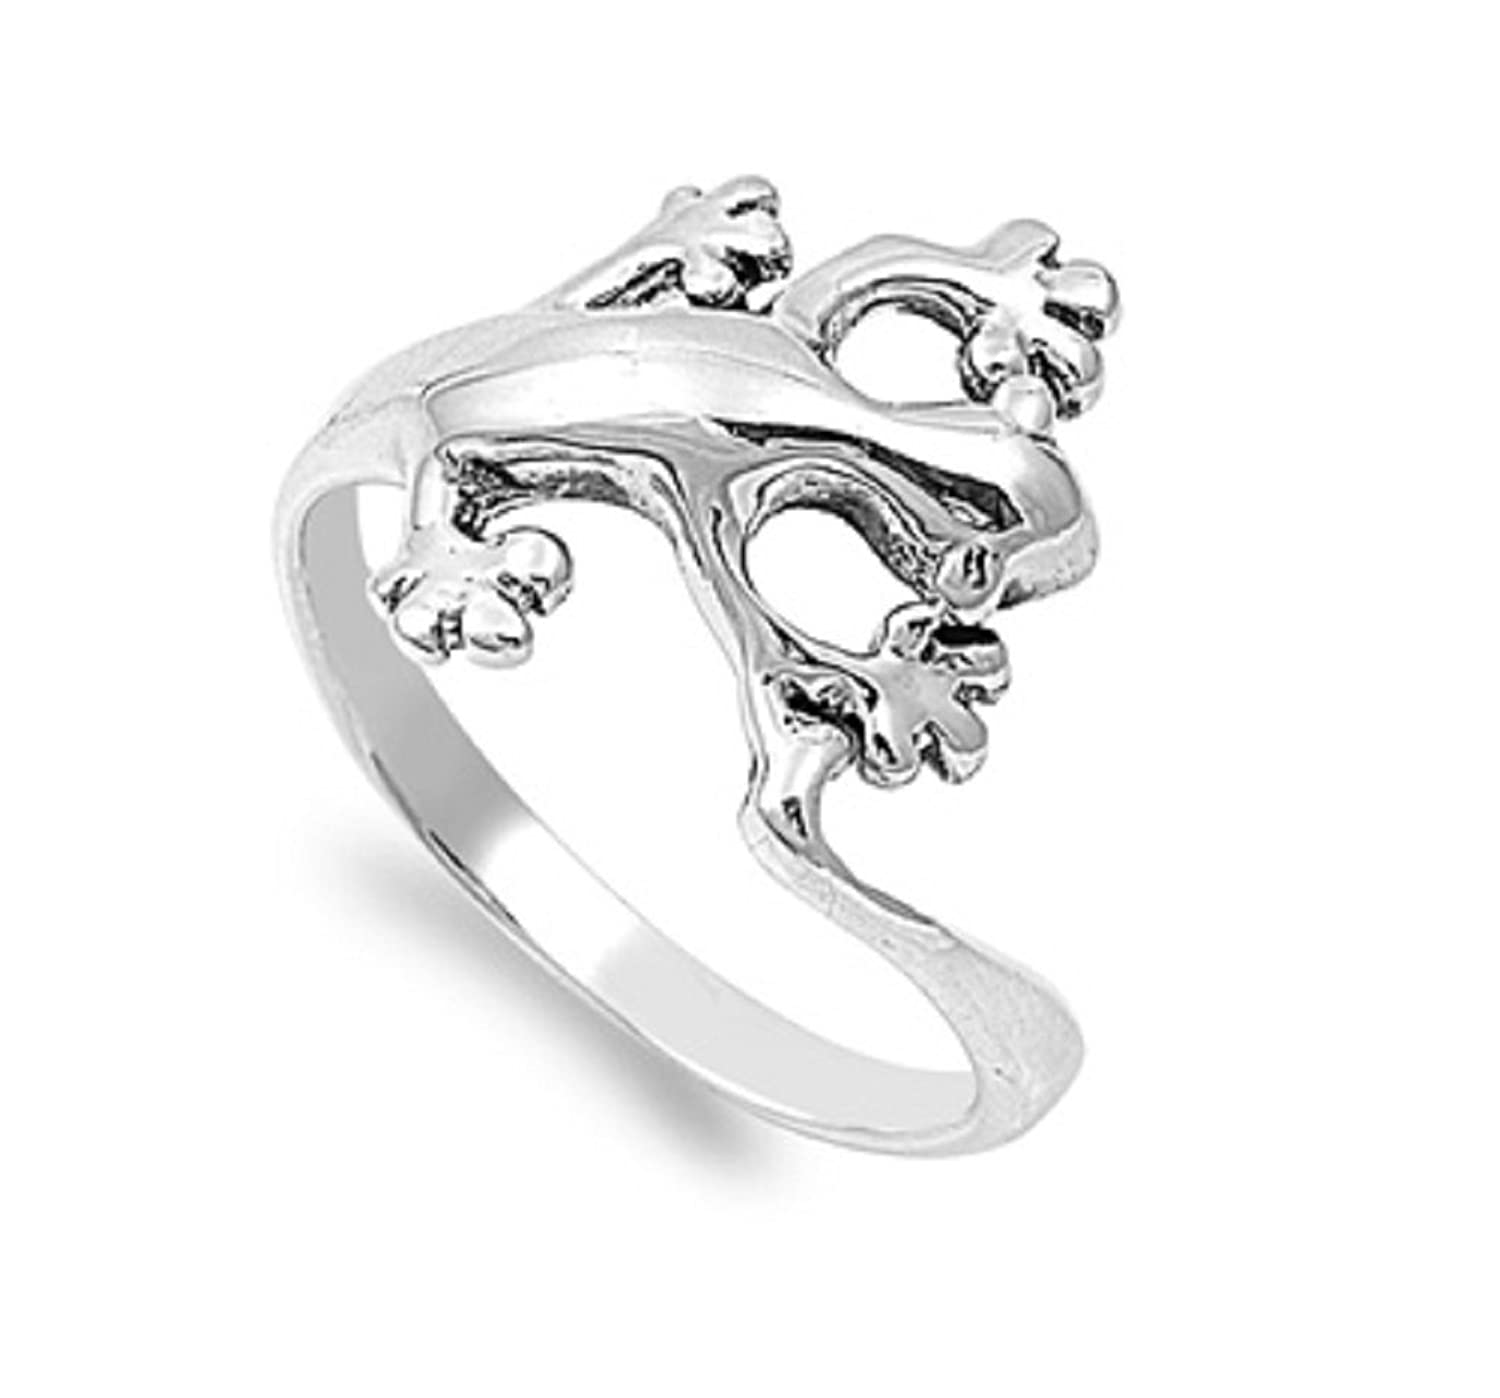 gecko bling reptile toe pmr jewelry midi ring adjustable lizard rings sterling silver